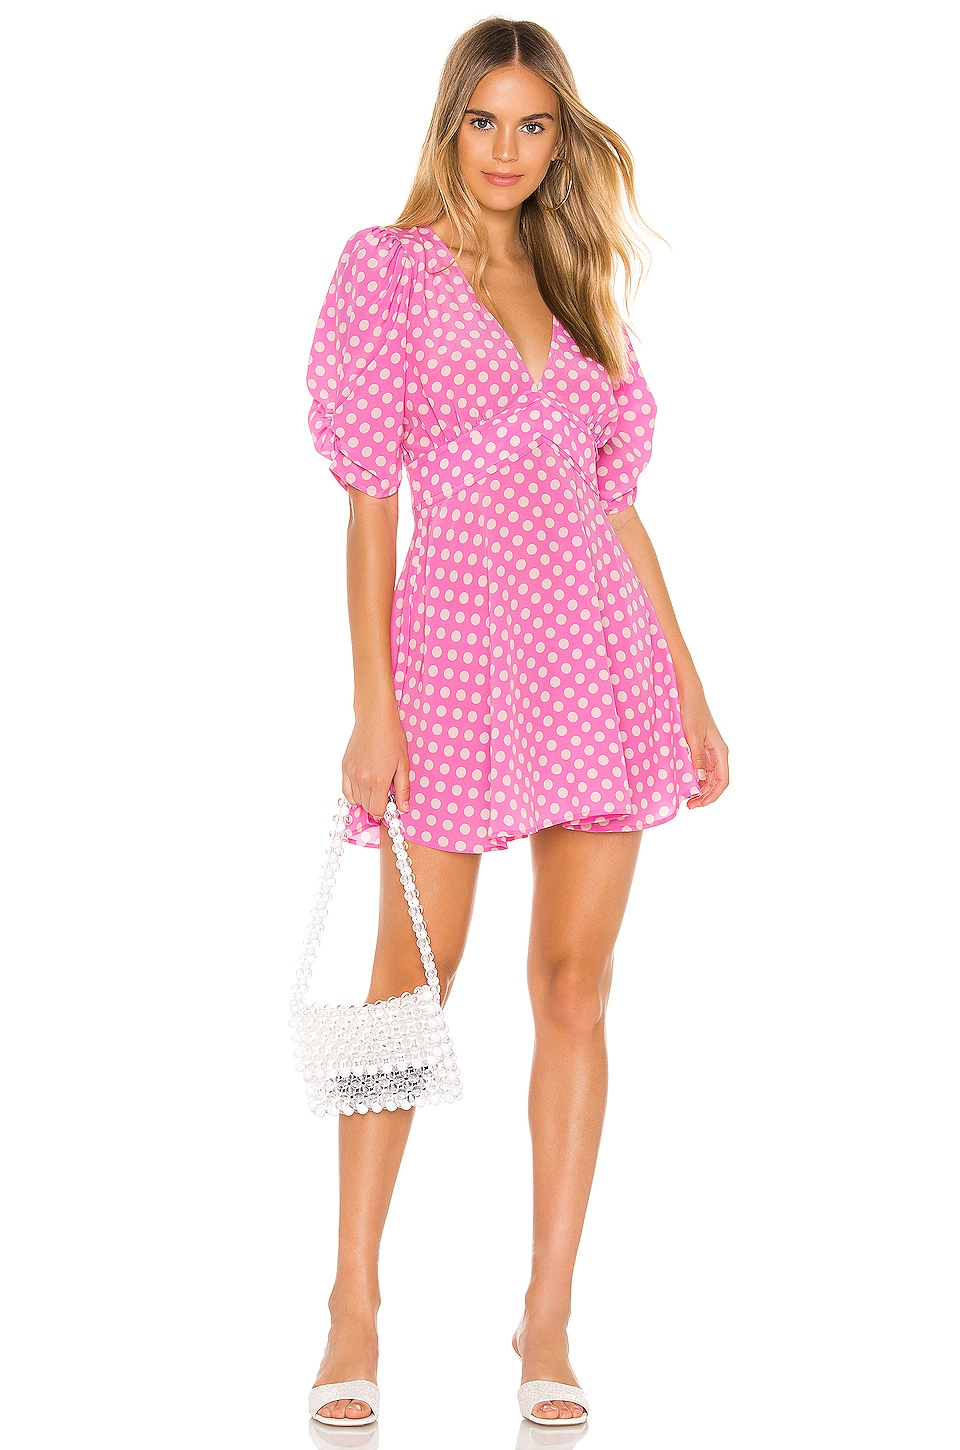 The Beach House Dress